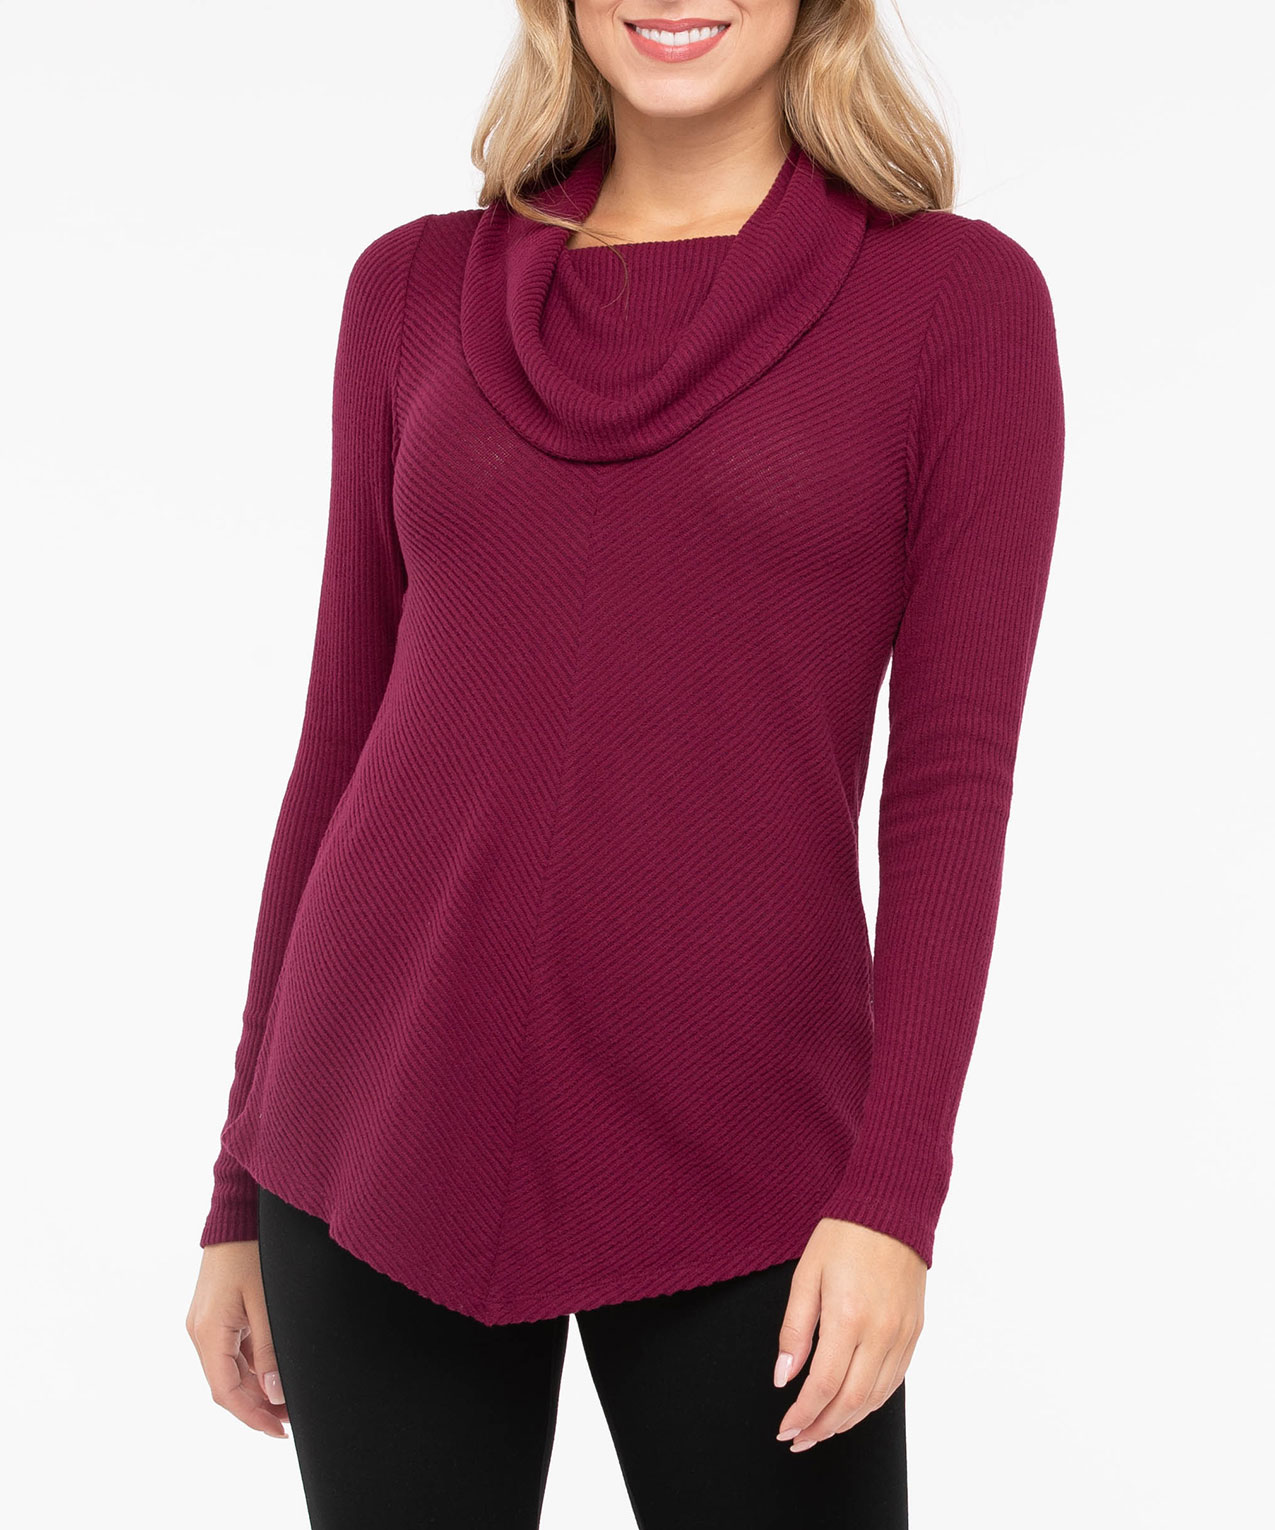 Cowl Neck Pointed Hem Top, Burgundy, hi-res